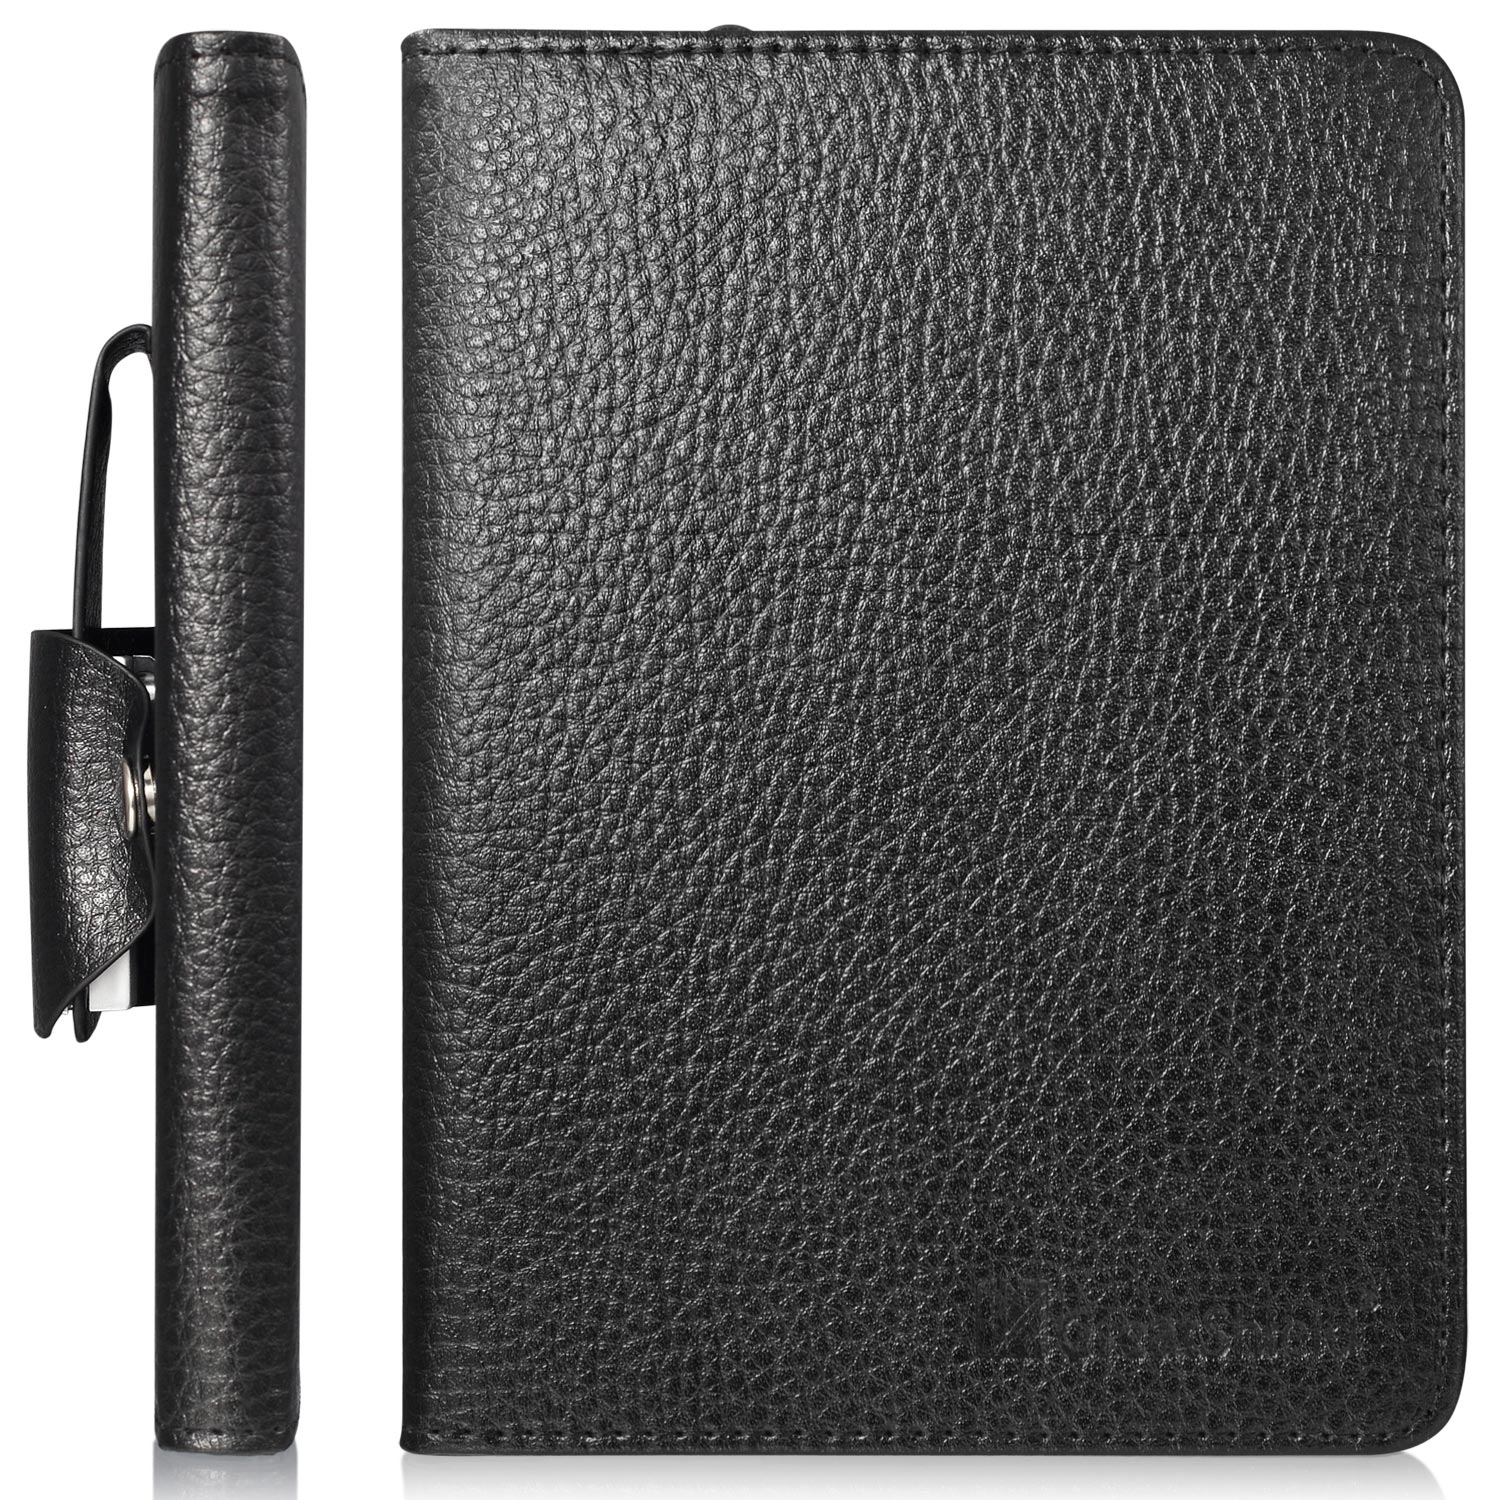 amazon all new kindle e reader leather case with built in. Black Bedroom Furniture Sets. Home Design Ideas